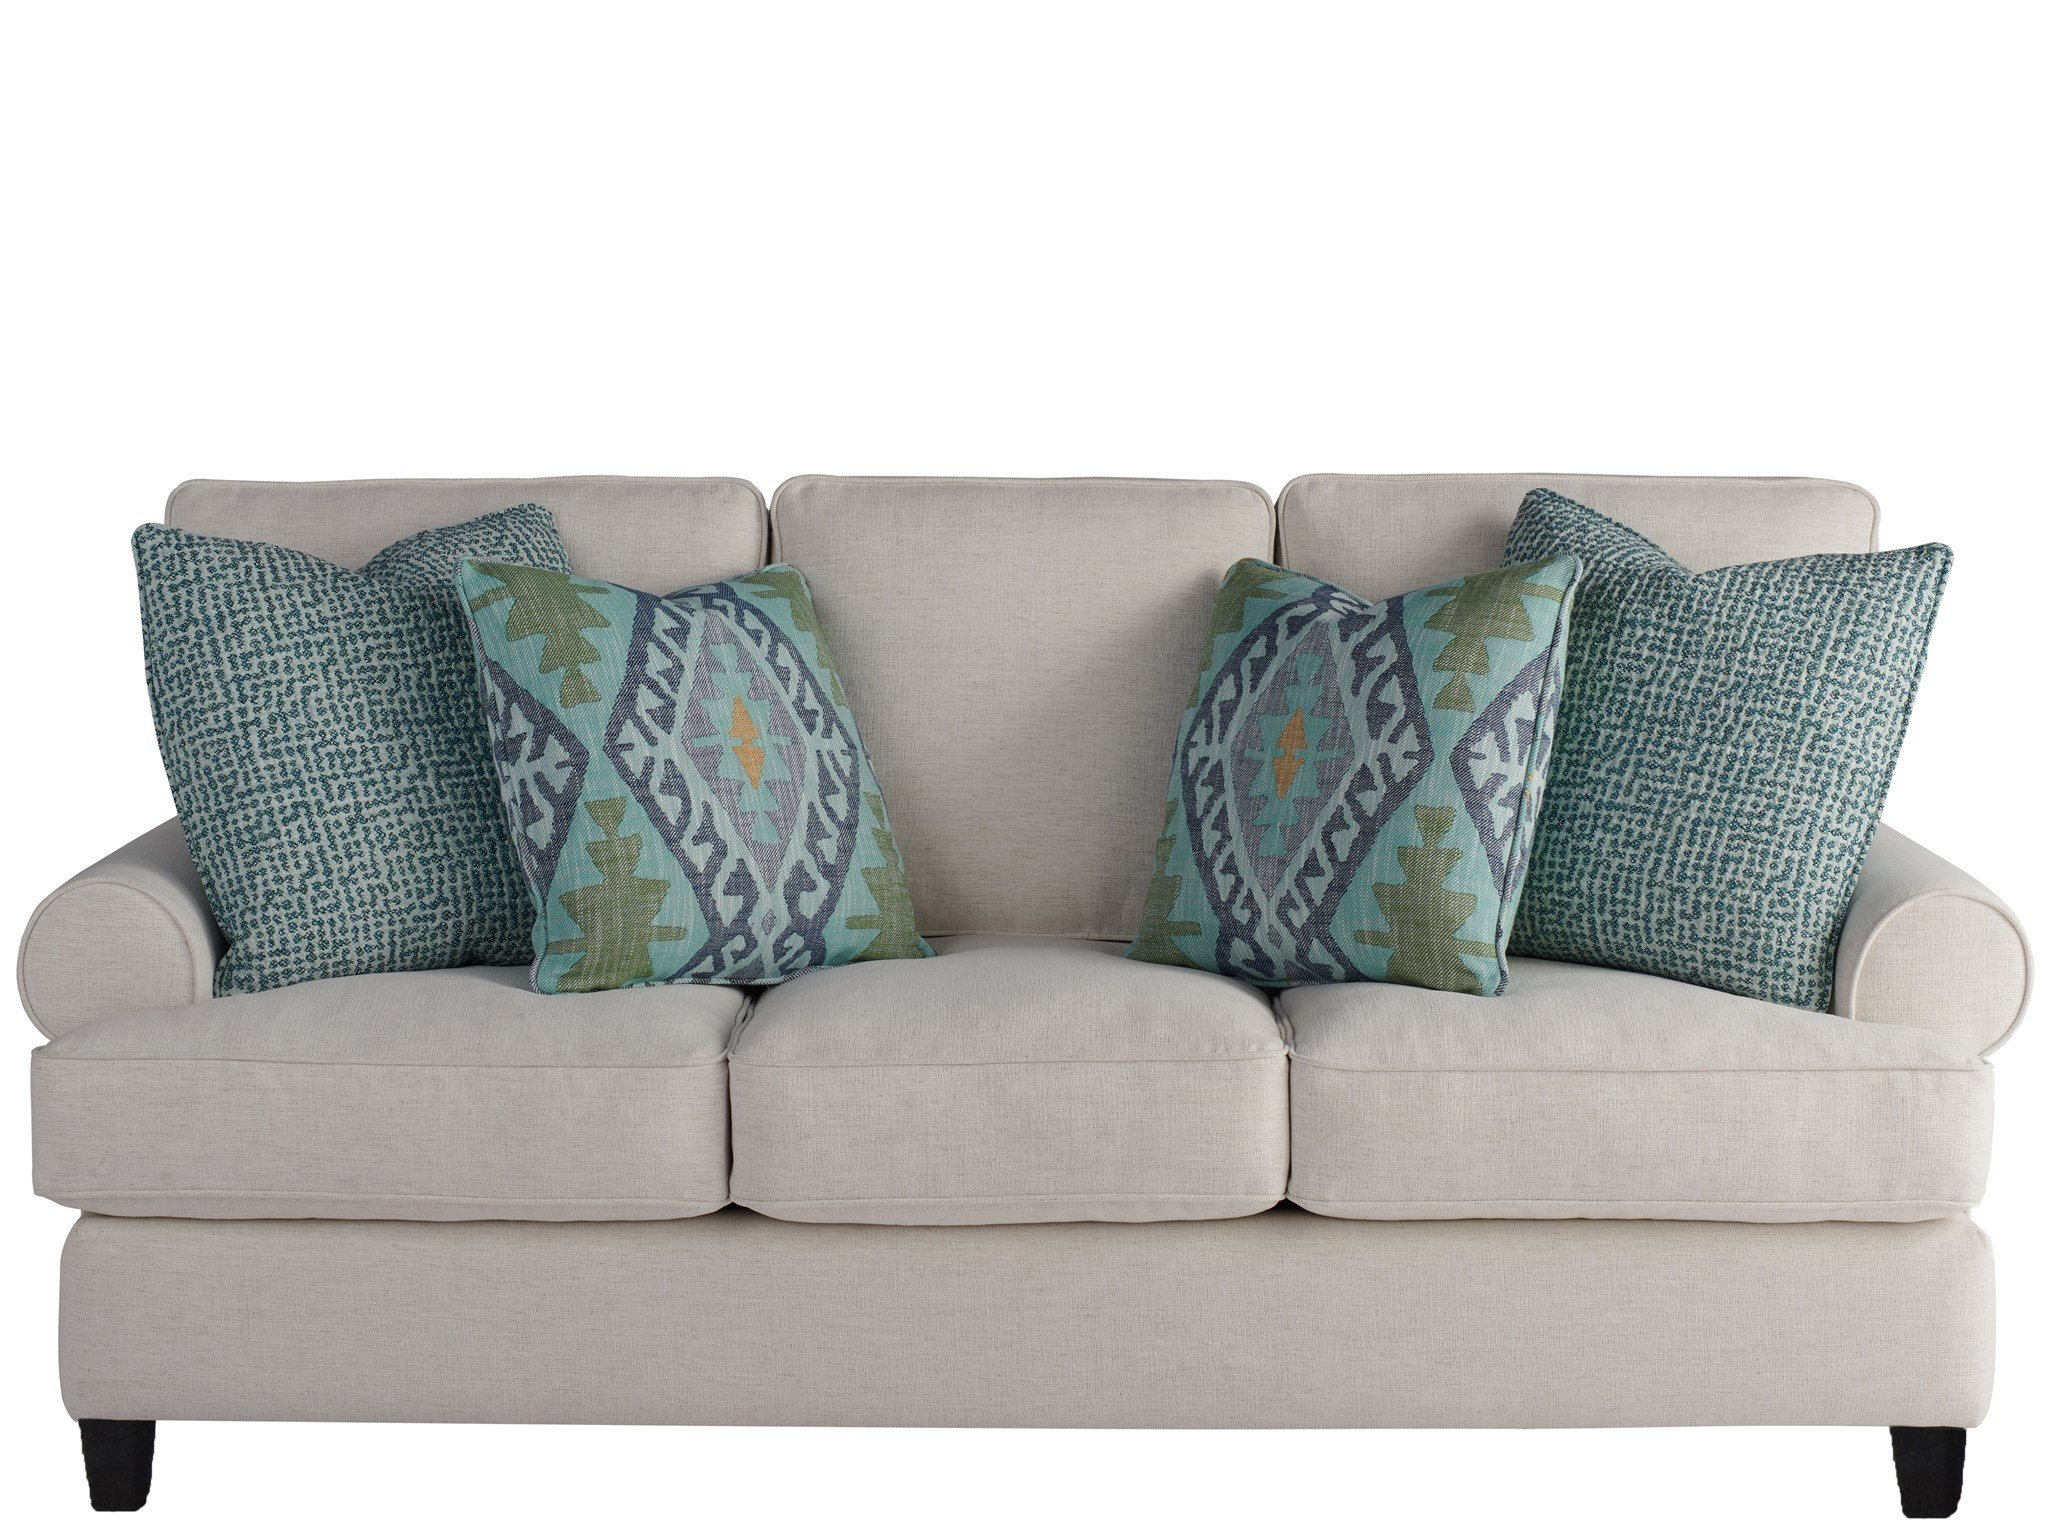 Blakely Sofa - Special Order